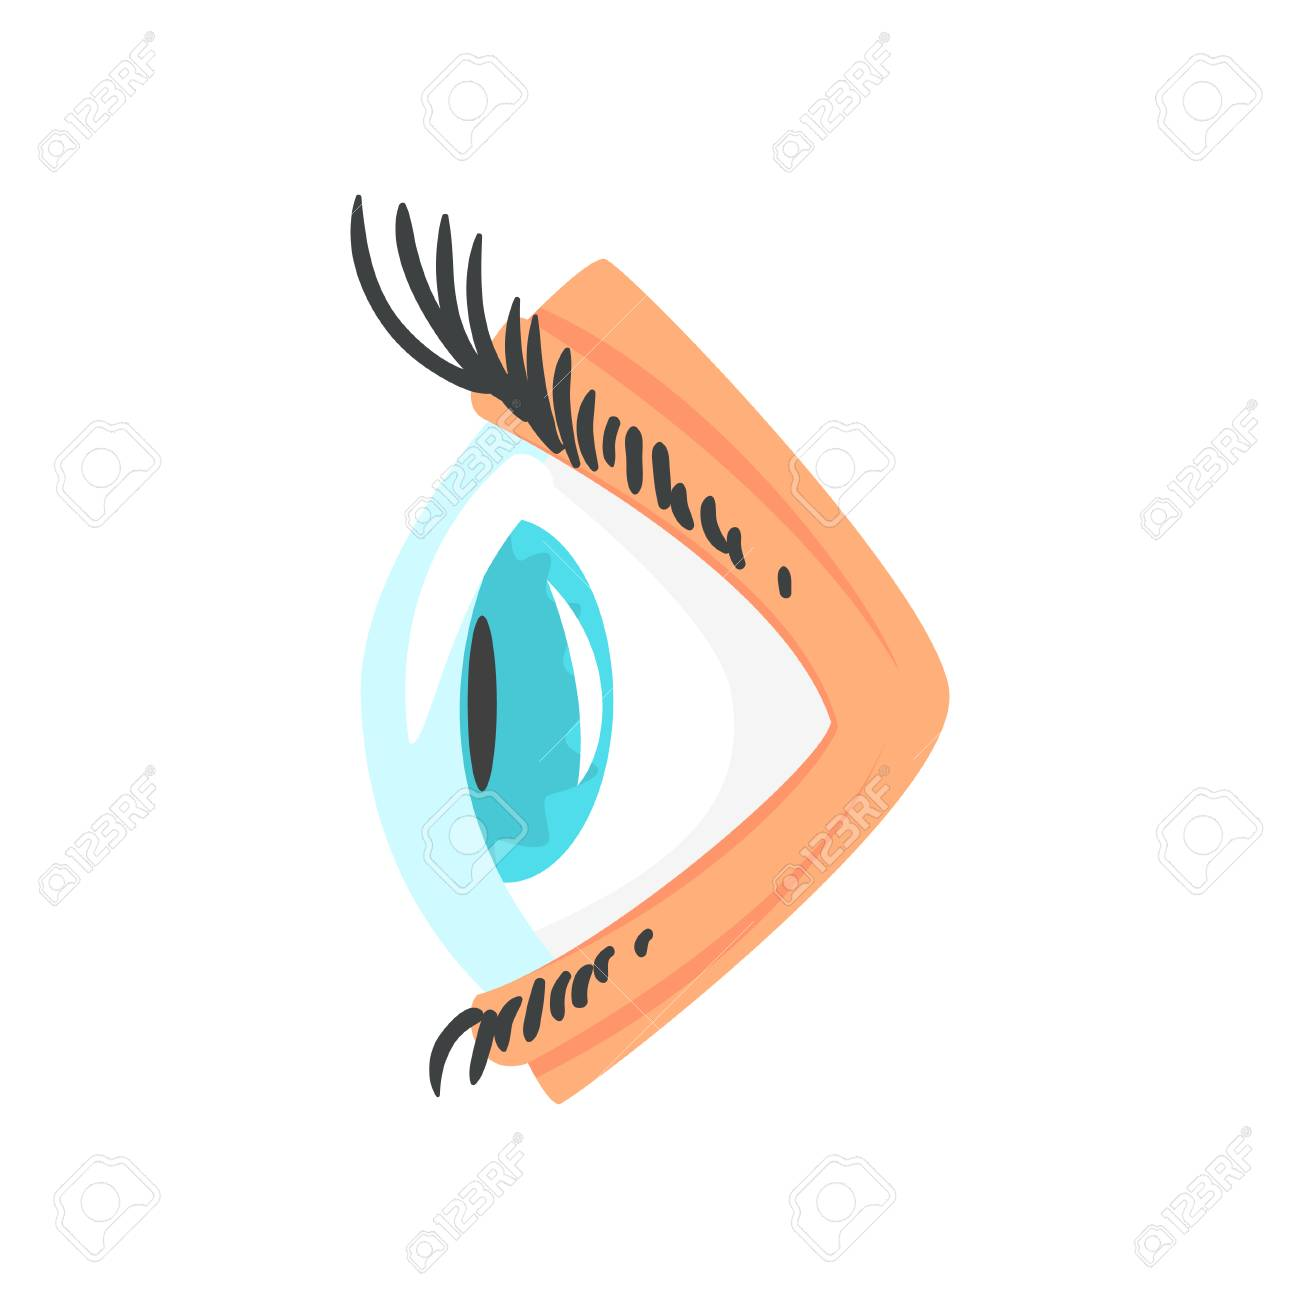 human eye with contact lense side view cartoon vector illustration rh 123rf com Bird Clip Art Side View From the Eyes